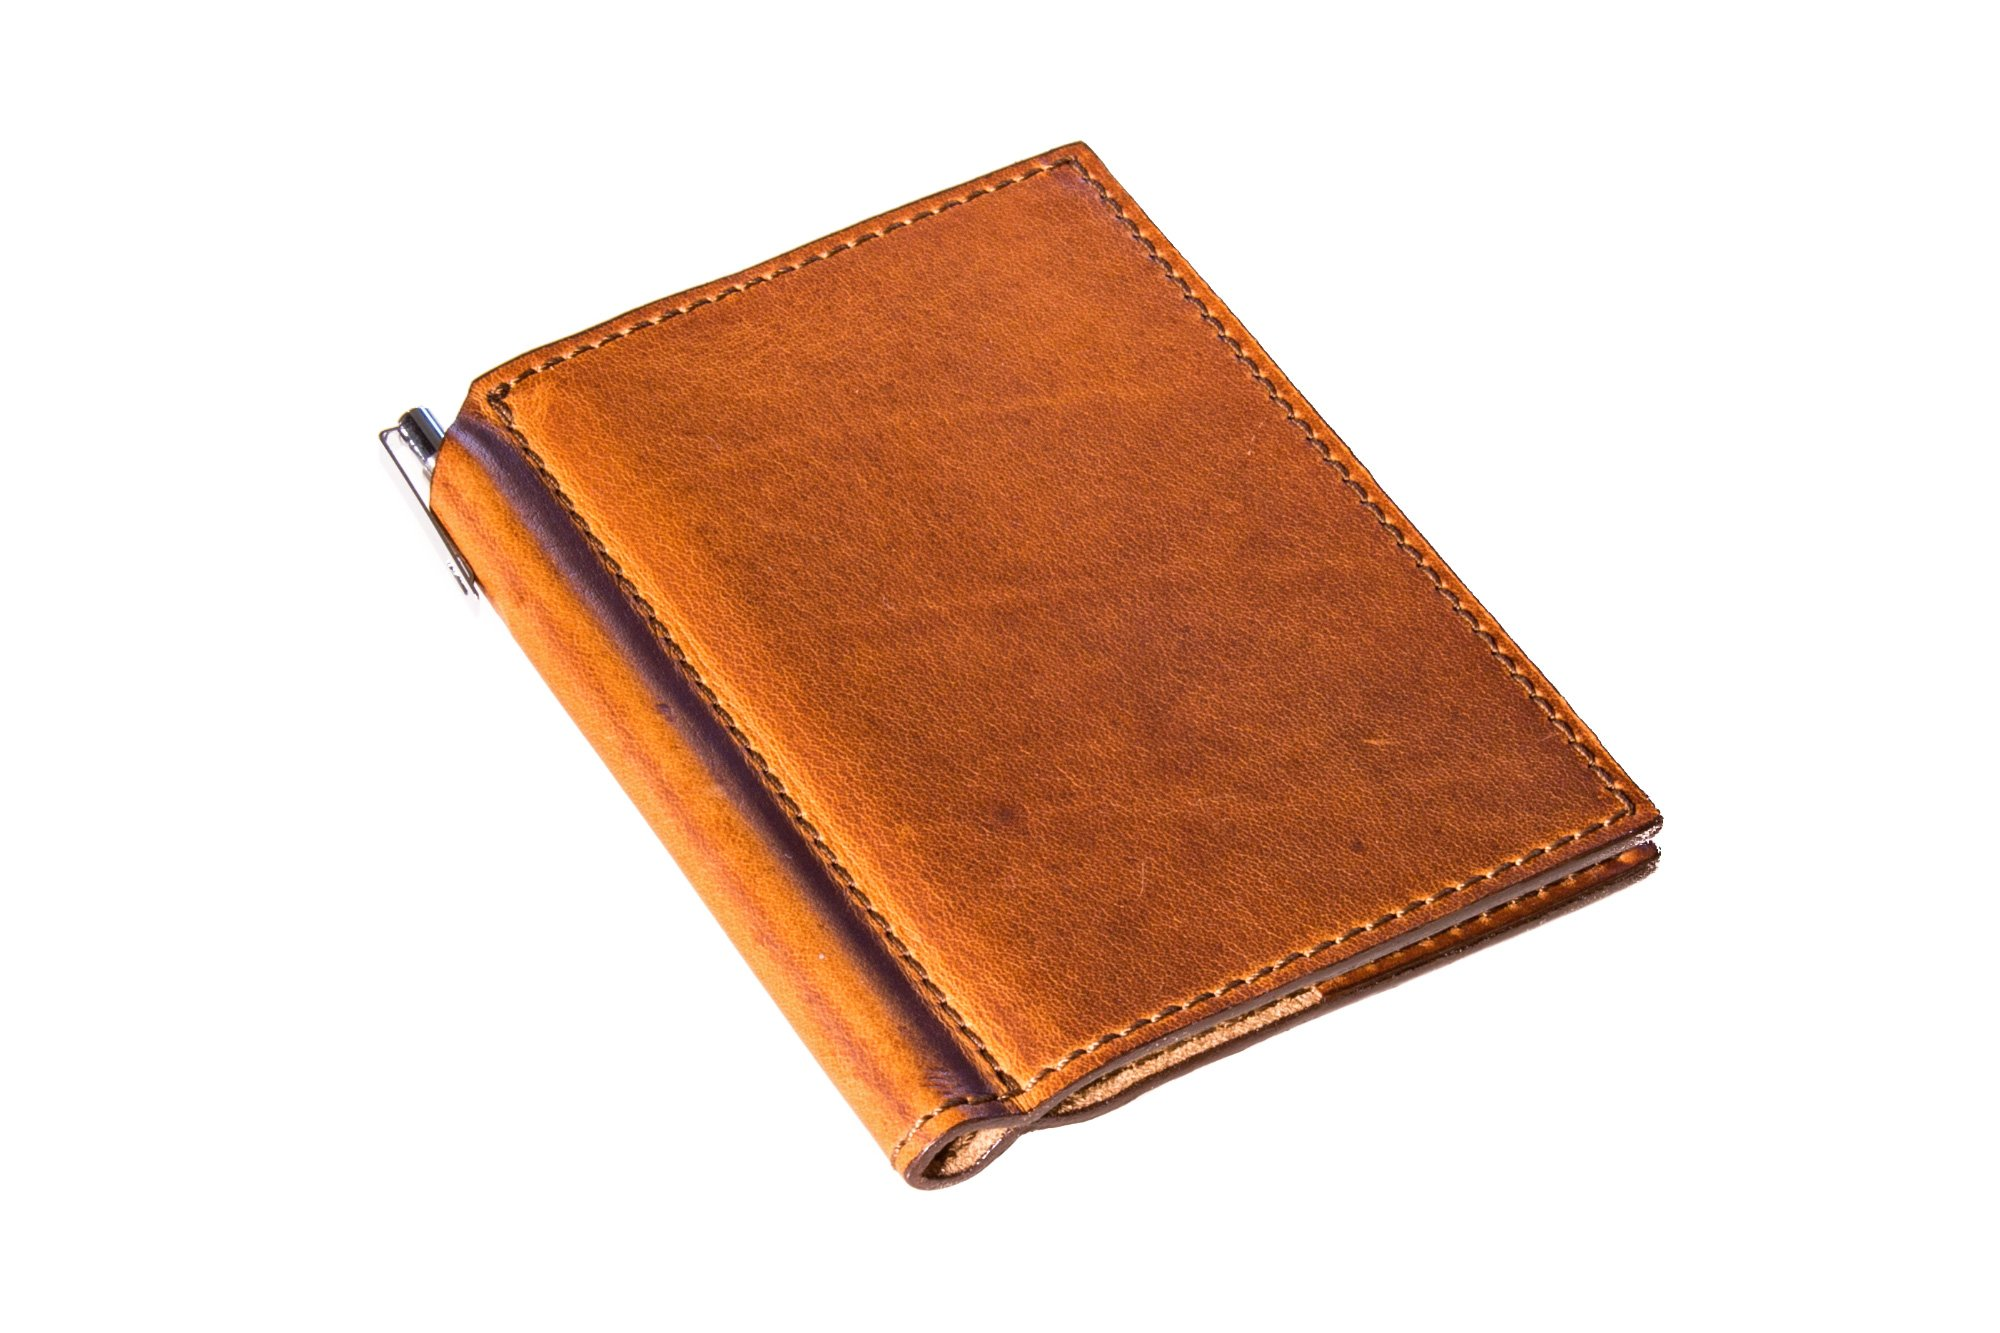 Natural Leather Mini Journal with Pen 3x4 in Horween Leather Cover Extra Small Moleskine Volant Notebook with Pen Holder Refillable Vintage Looking Journal for Men and Women